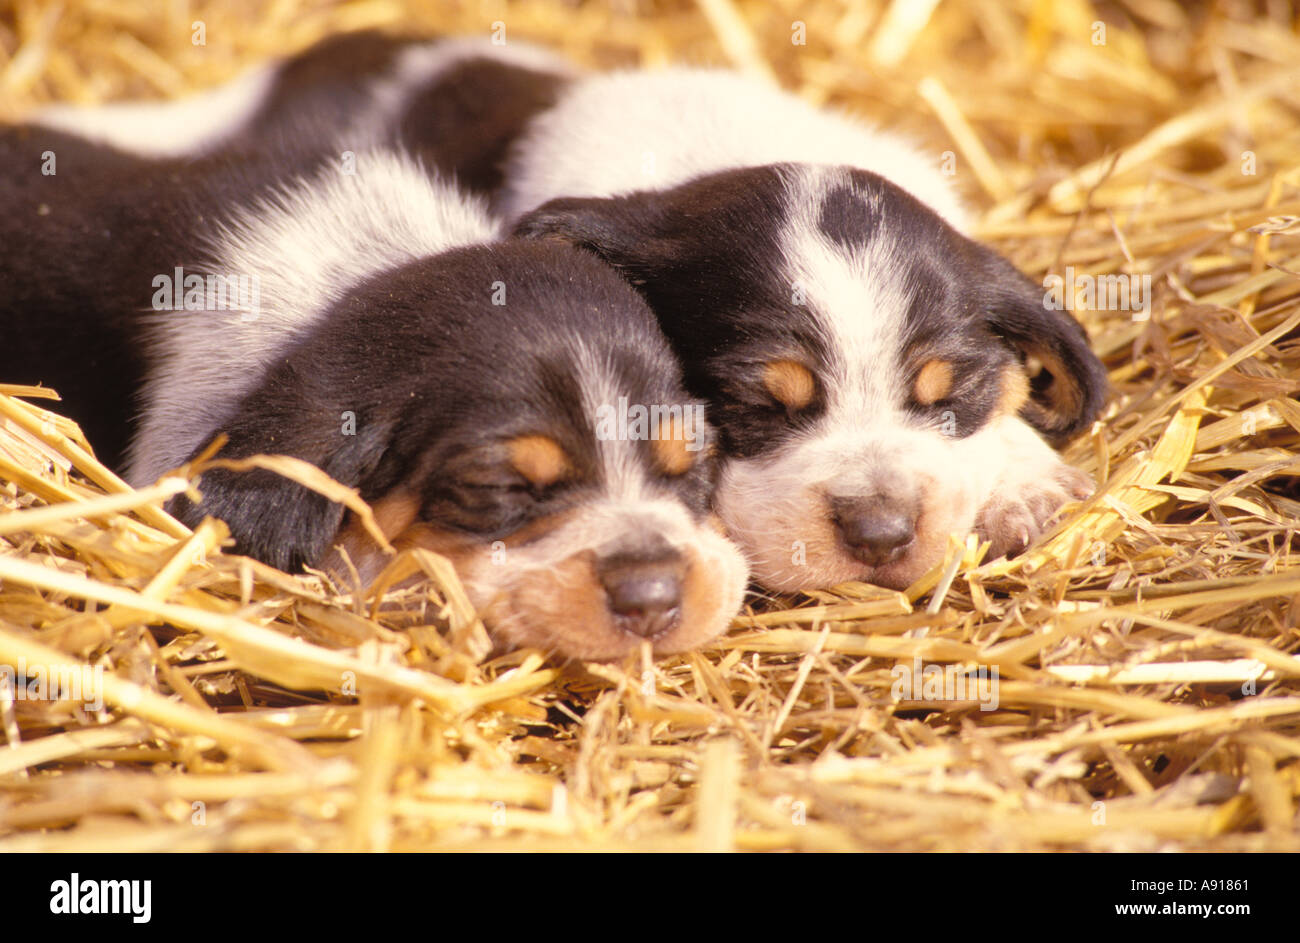 Beagle puppies sleeping - Stock Image